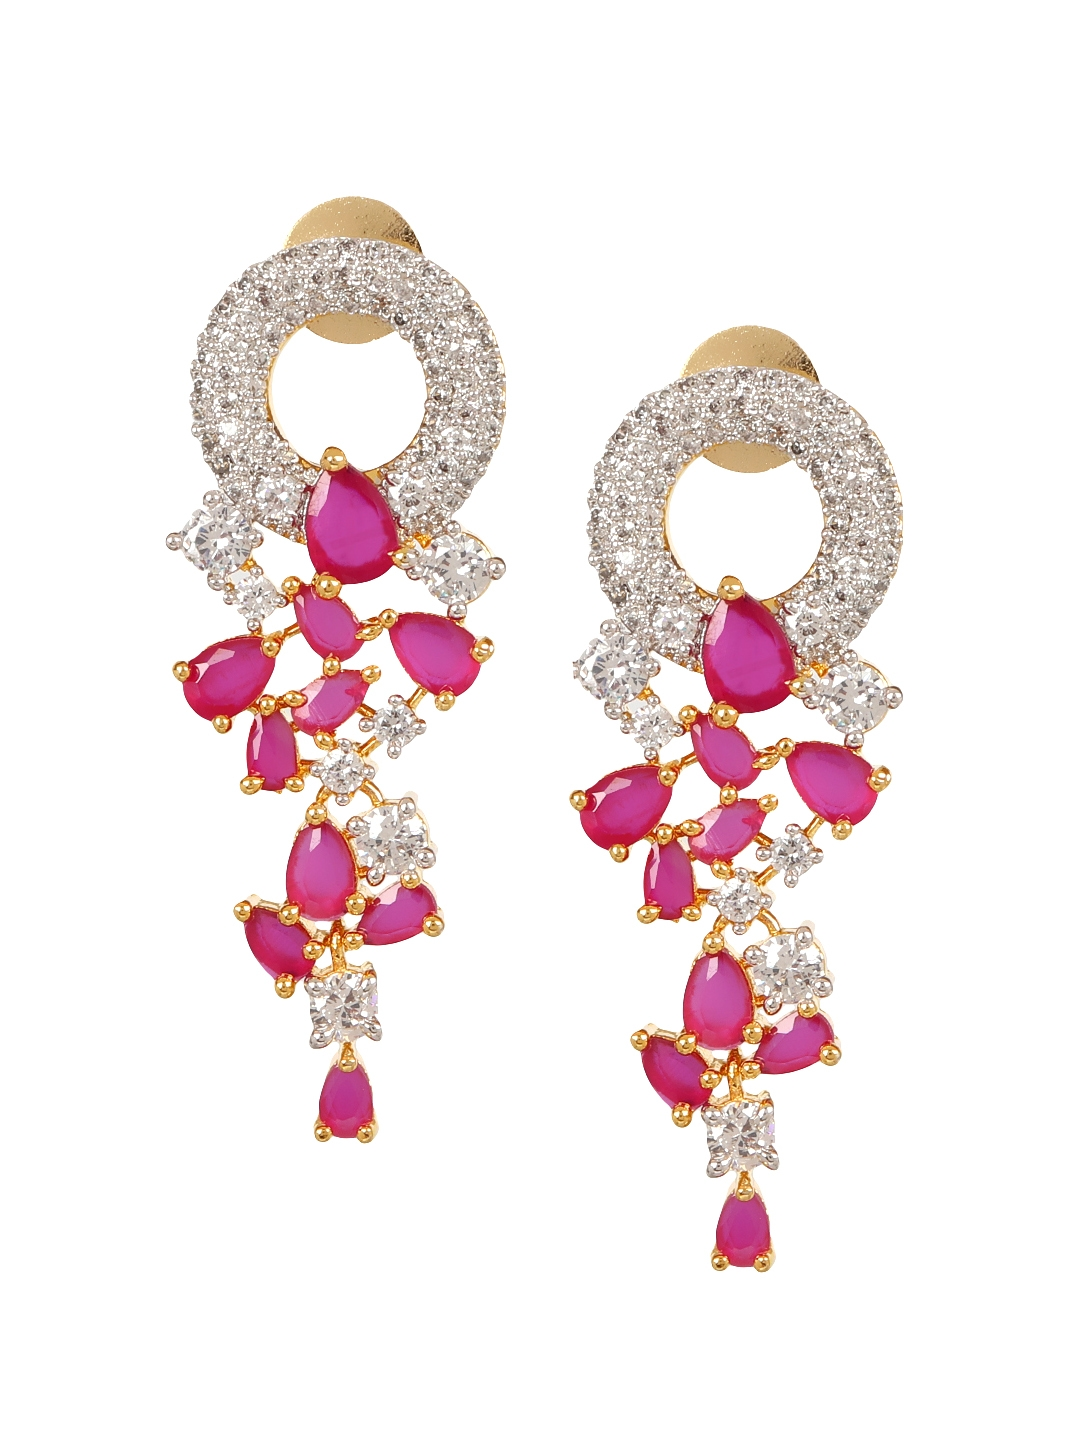 2d539a47de891 Buy Adwitiya Collection Gold Plated & White Double Sided Floral Drop ...